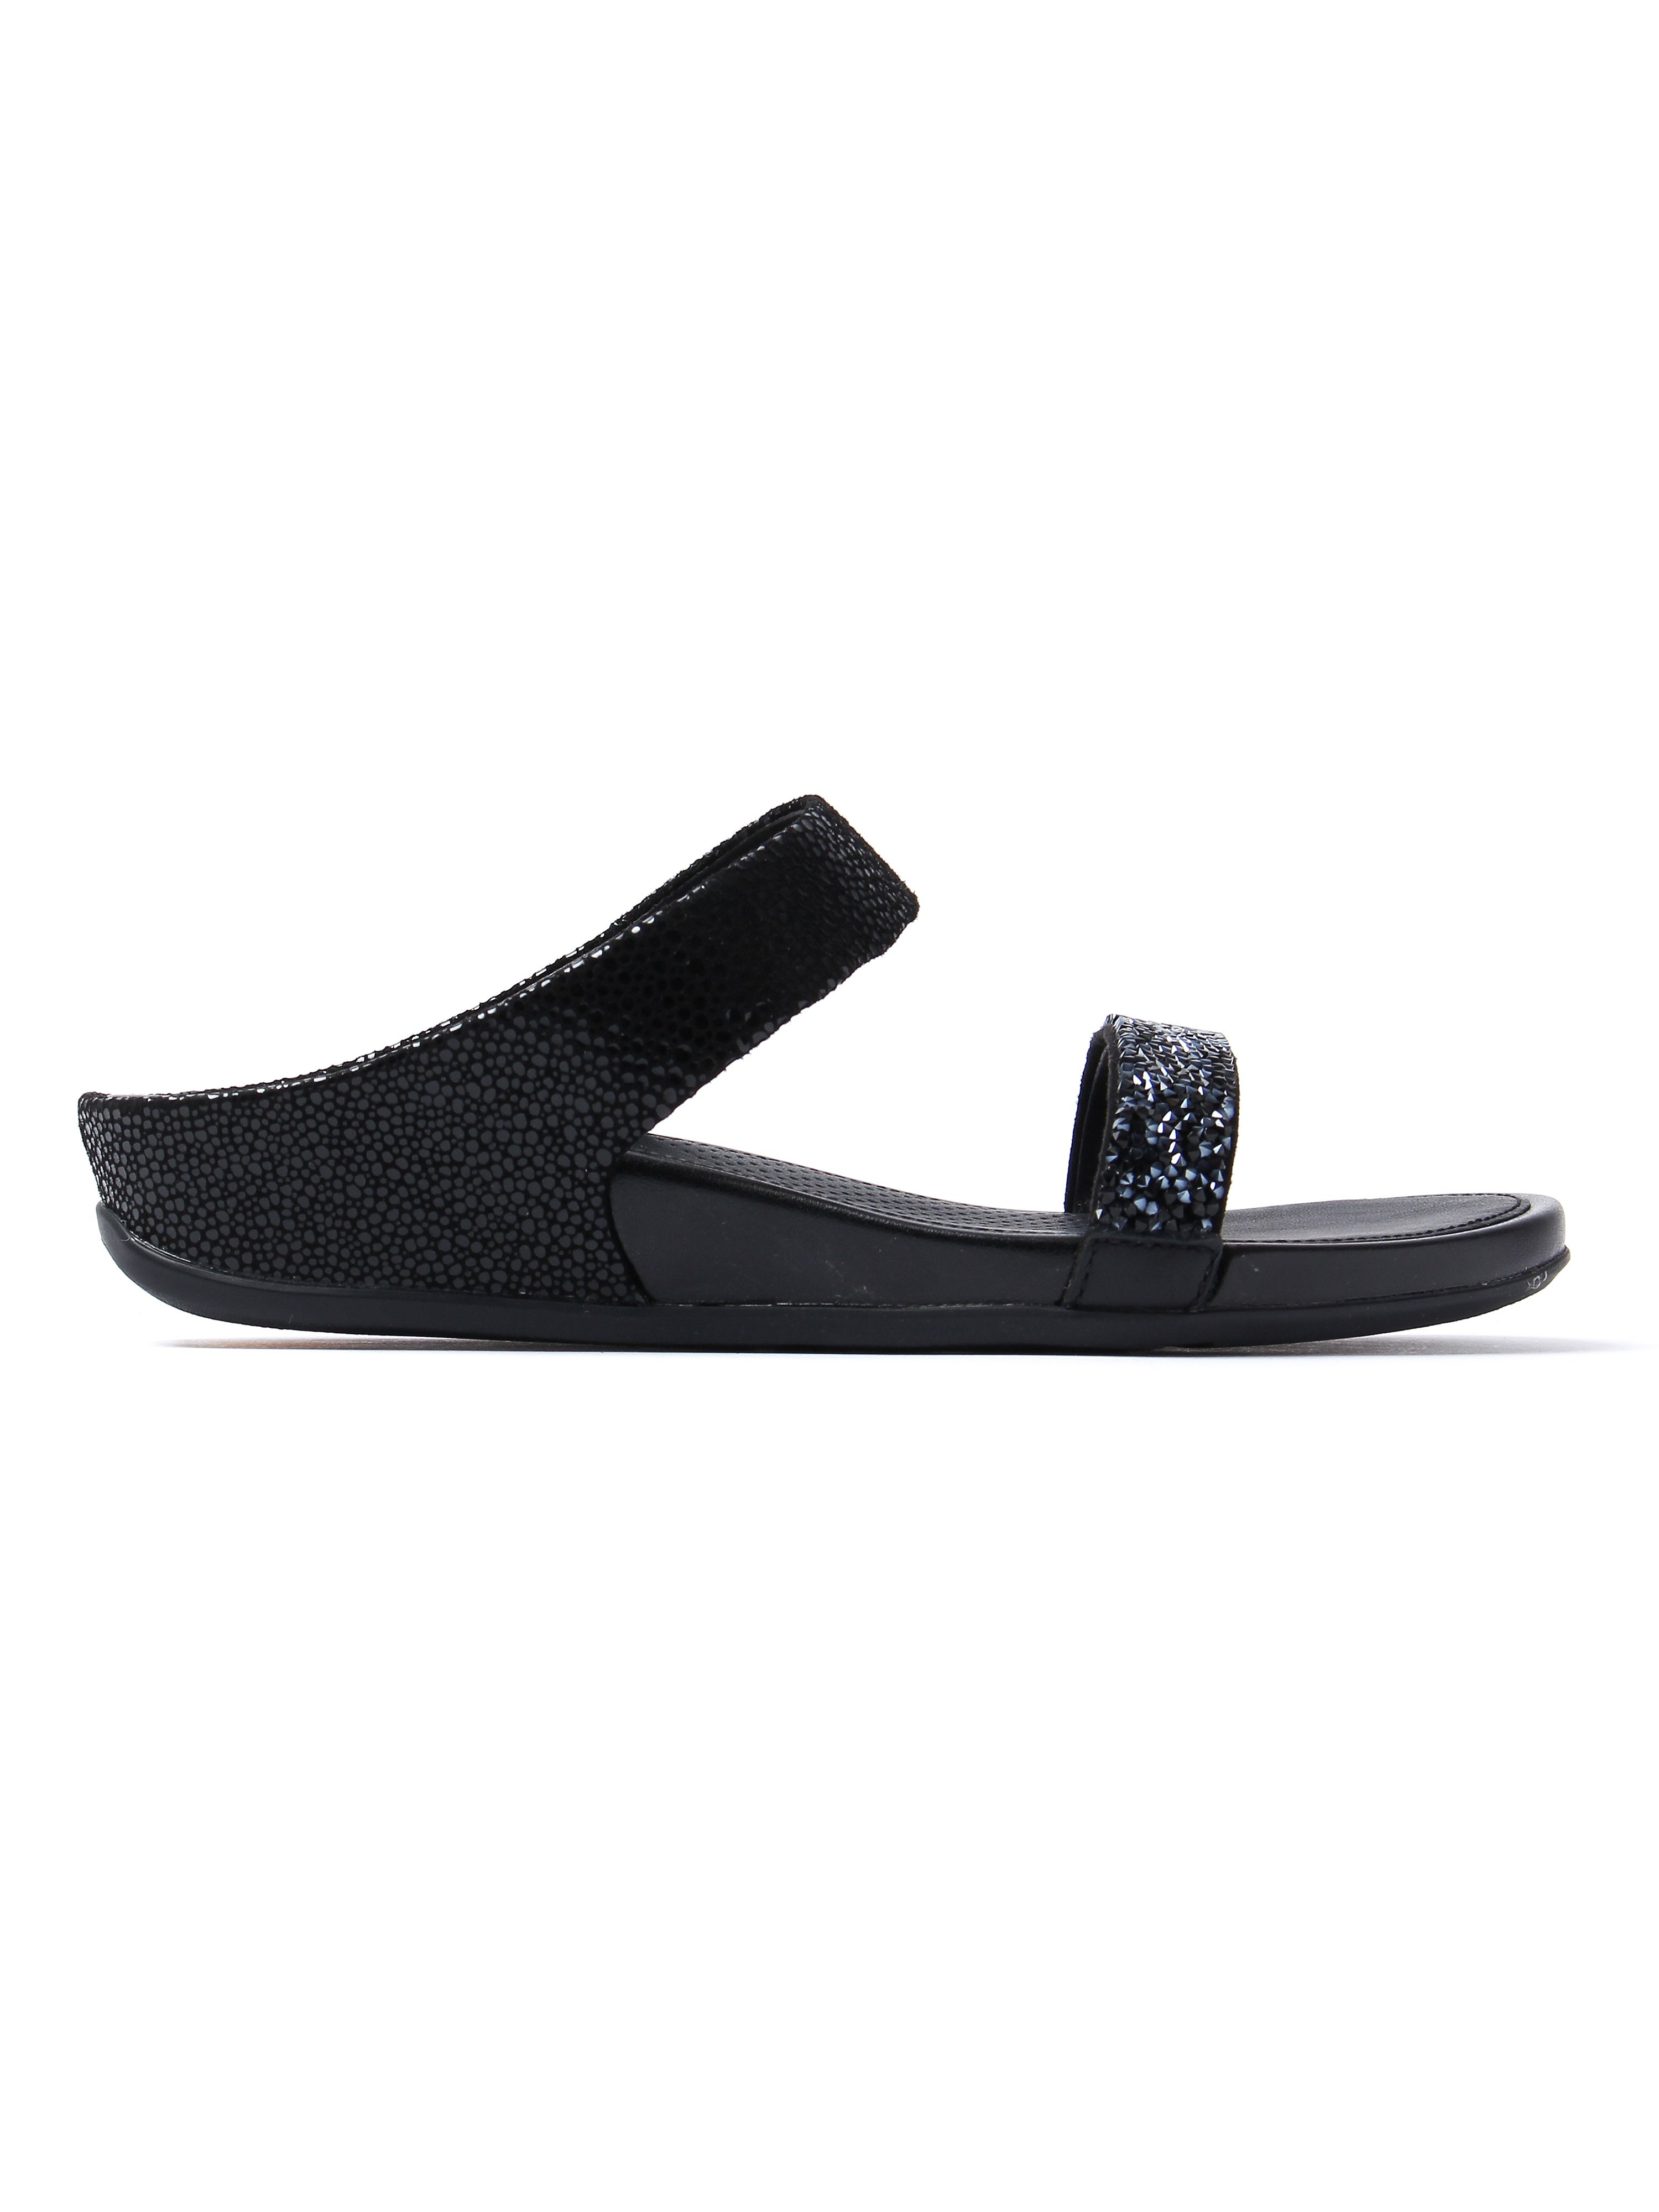 FitFlop Women's Banda Roxy Slide Sandals - Black